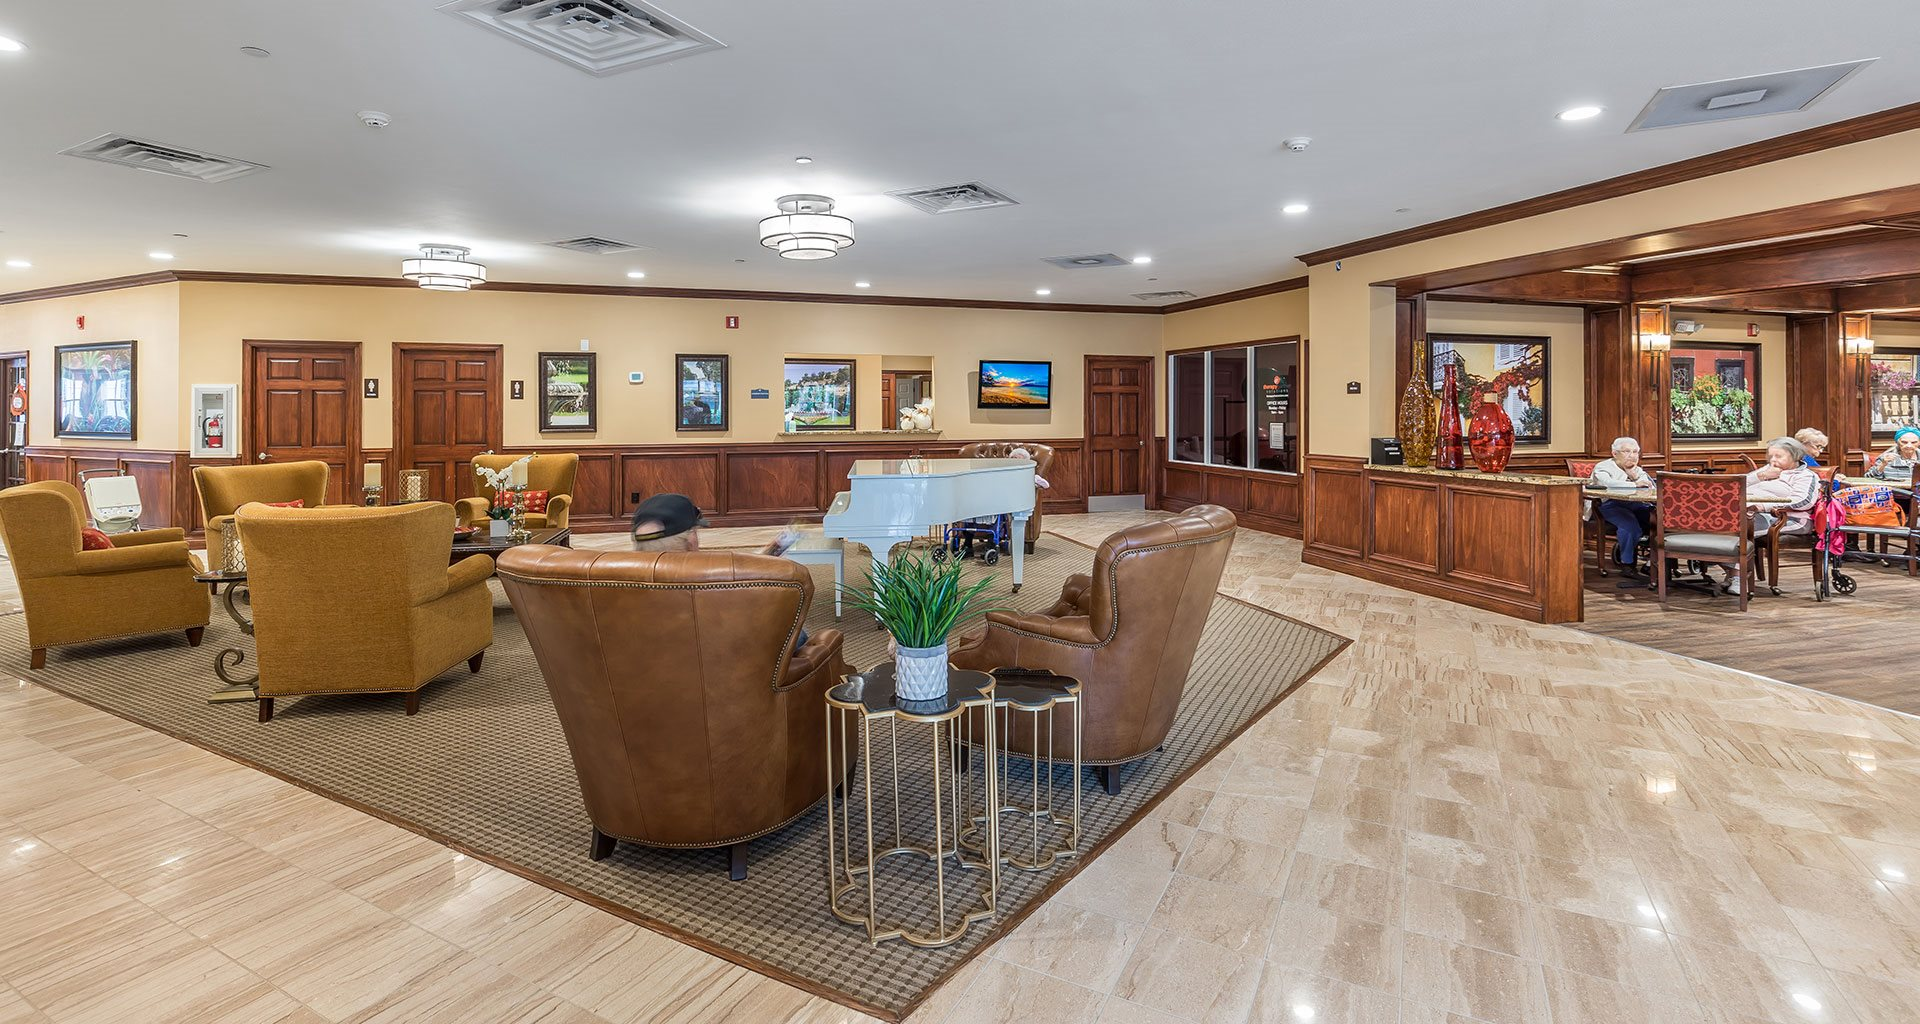 Posh Lounge Area In Clubhouse Is Perfect For Meeting Up With Friends at Wyndham Lakes, Jacksonville, FL, 32257